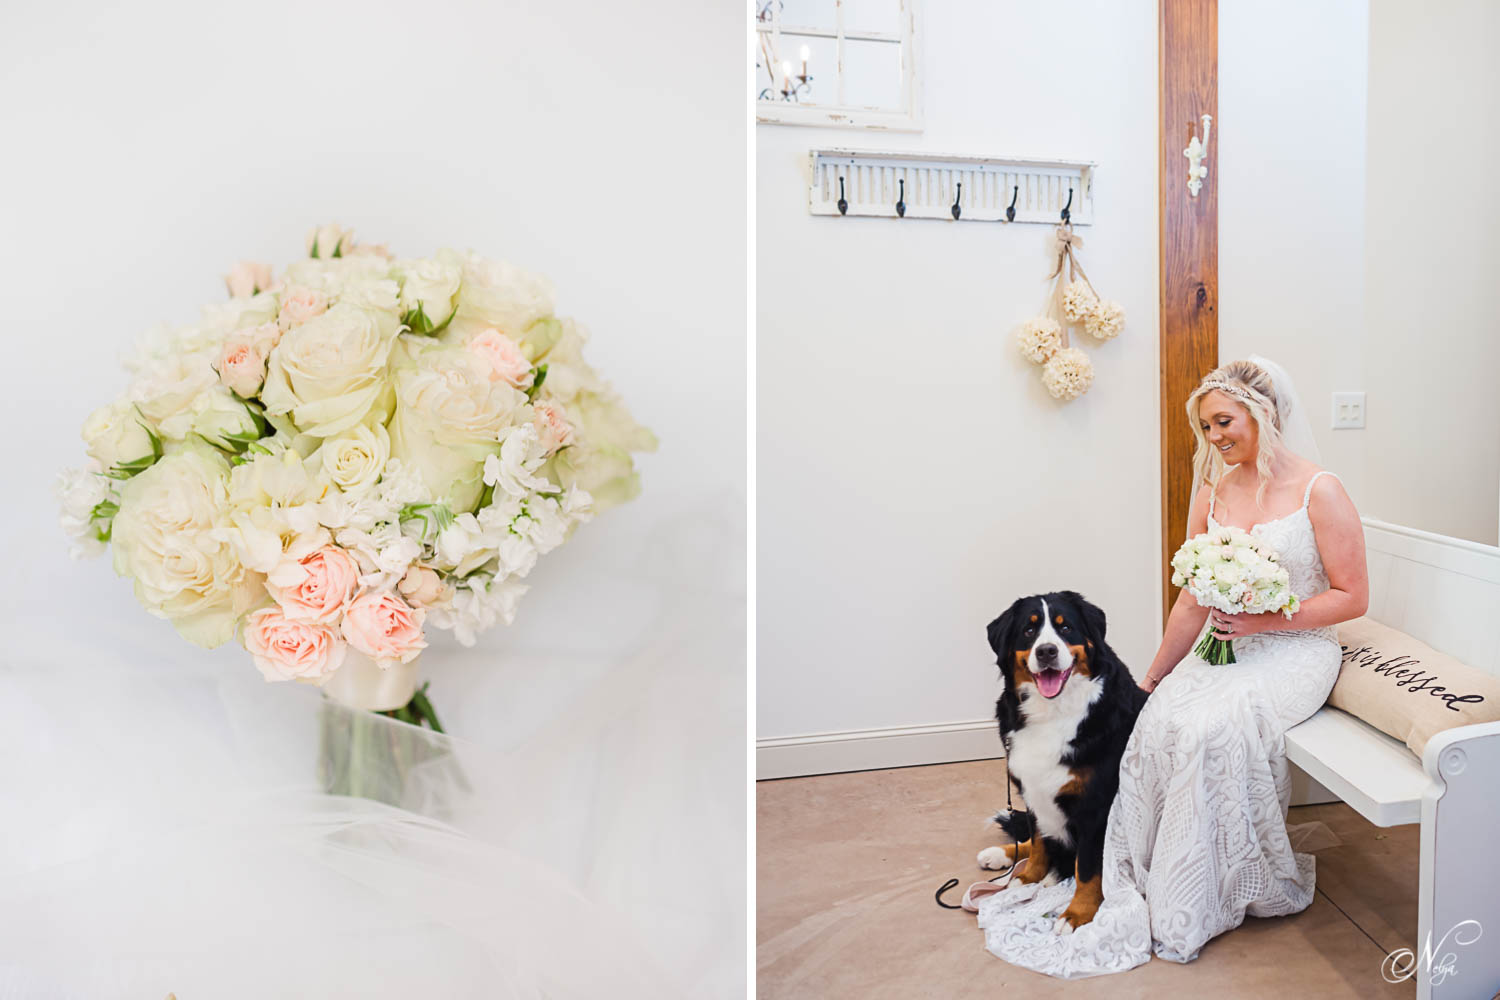 white and pink rose bouquet. And Bride sitting on bench with her black and white dog